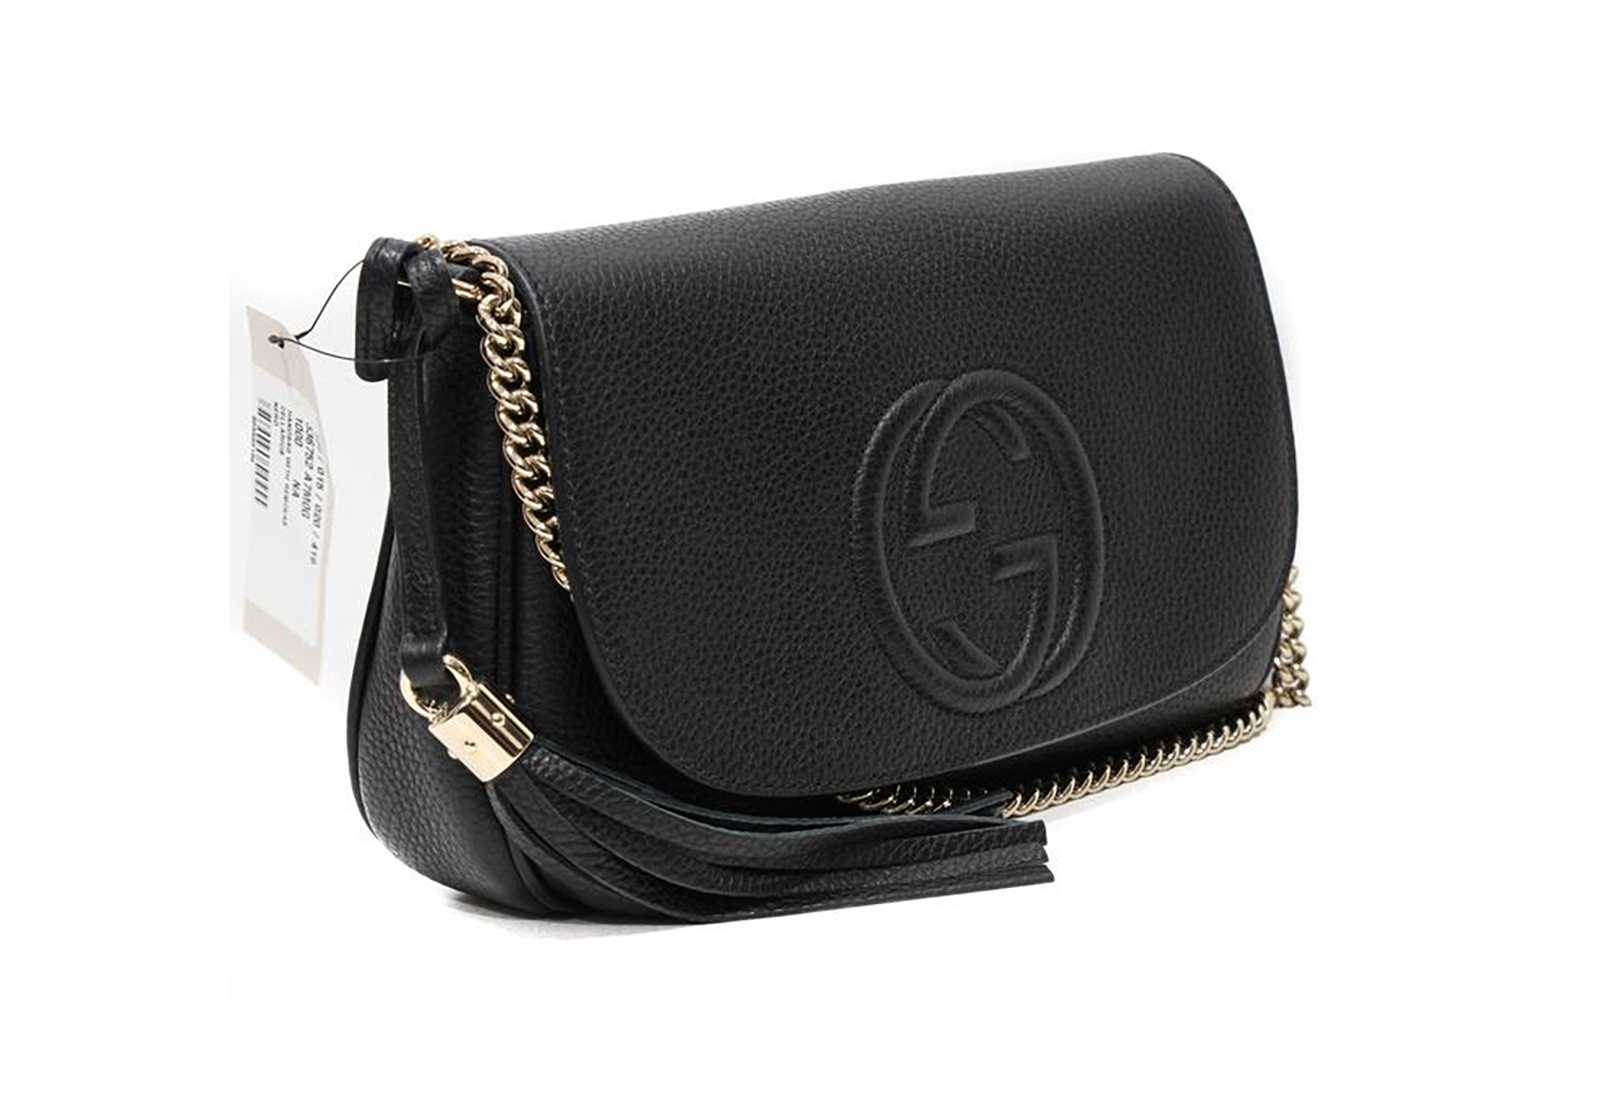 How To Authenticate Gucci Handbags Lovetoknow